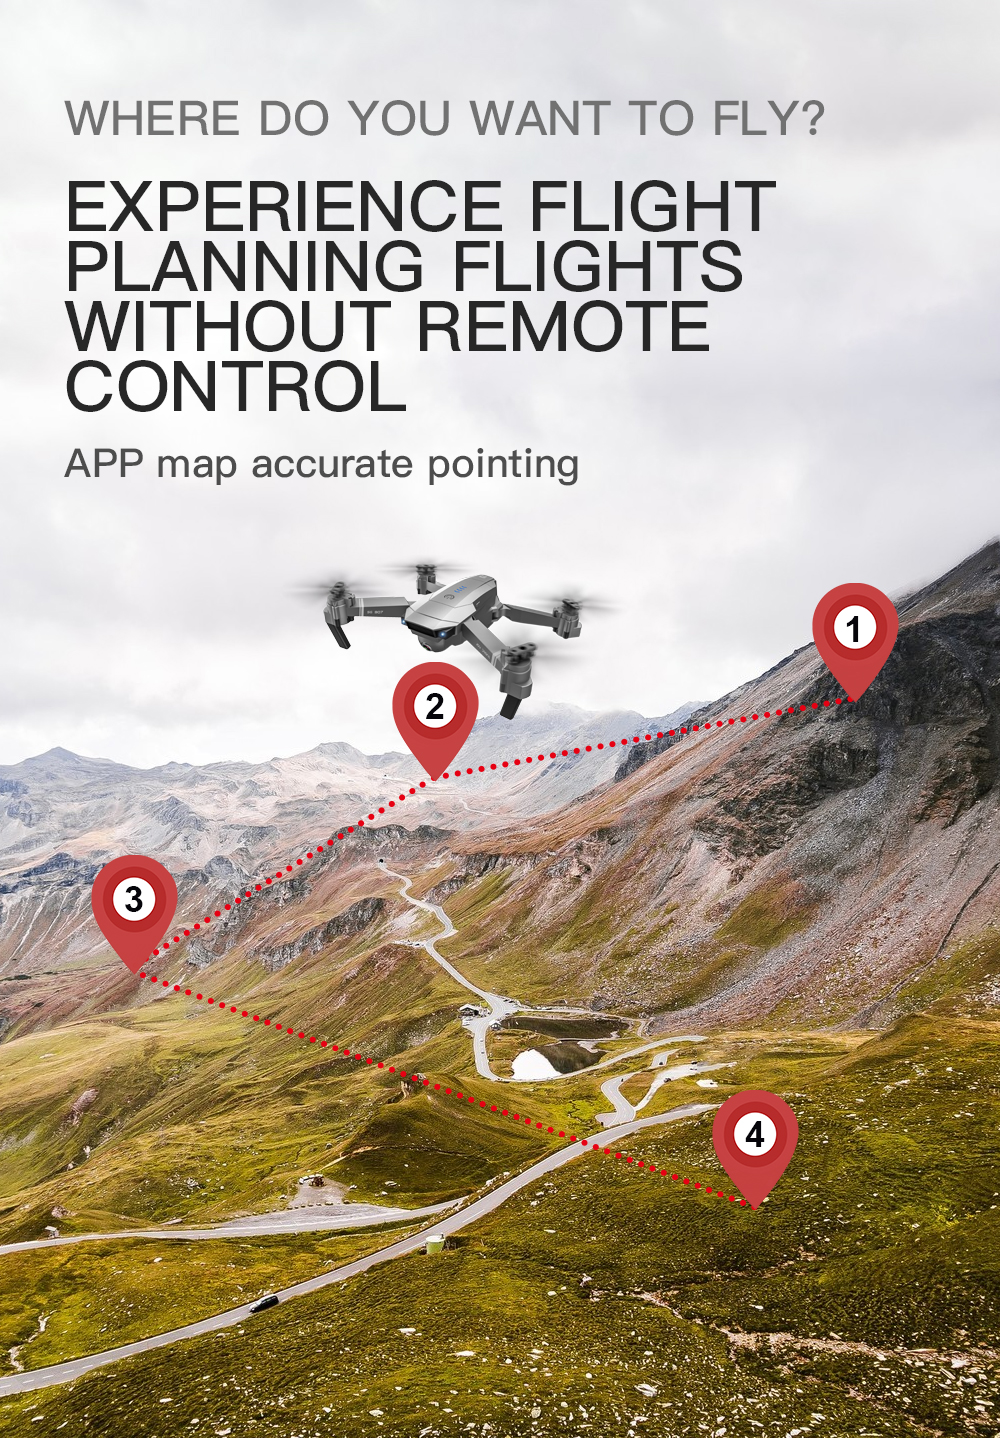 SG907 WIFI RC Quadcopter GPS Drone with 4K HD Dual Camera for Wide Angle Video Shooting 21